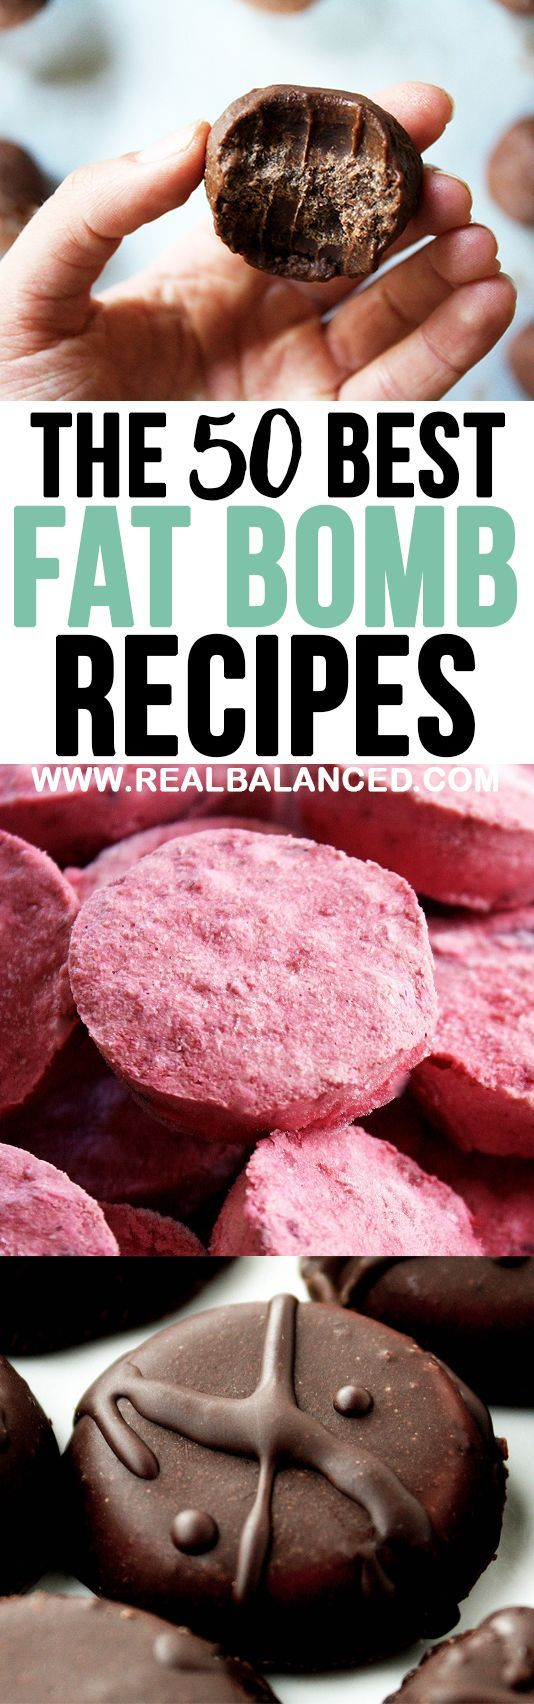 The 50 Best Fat Bomb Recipes #fatbombs #keto #ketogenic #lchf #lowcarb